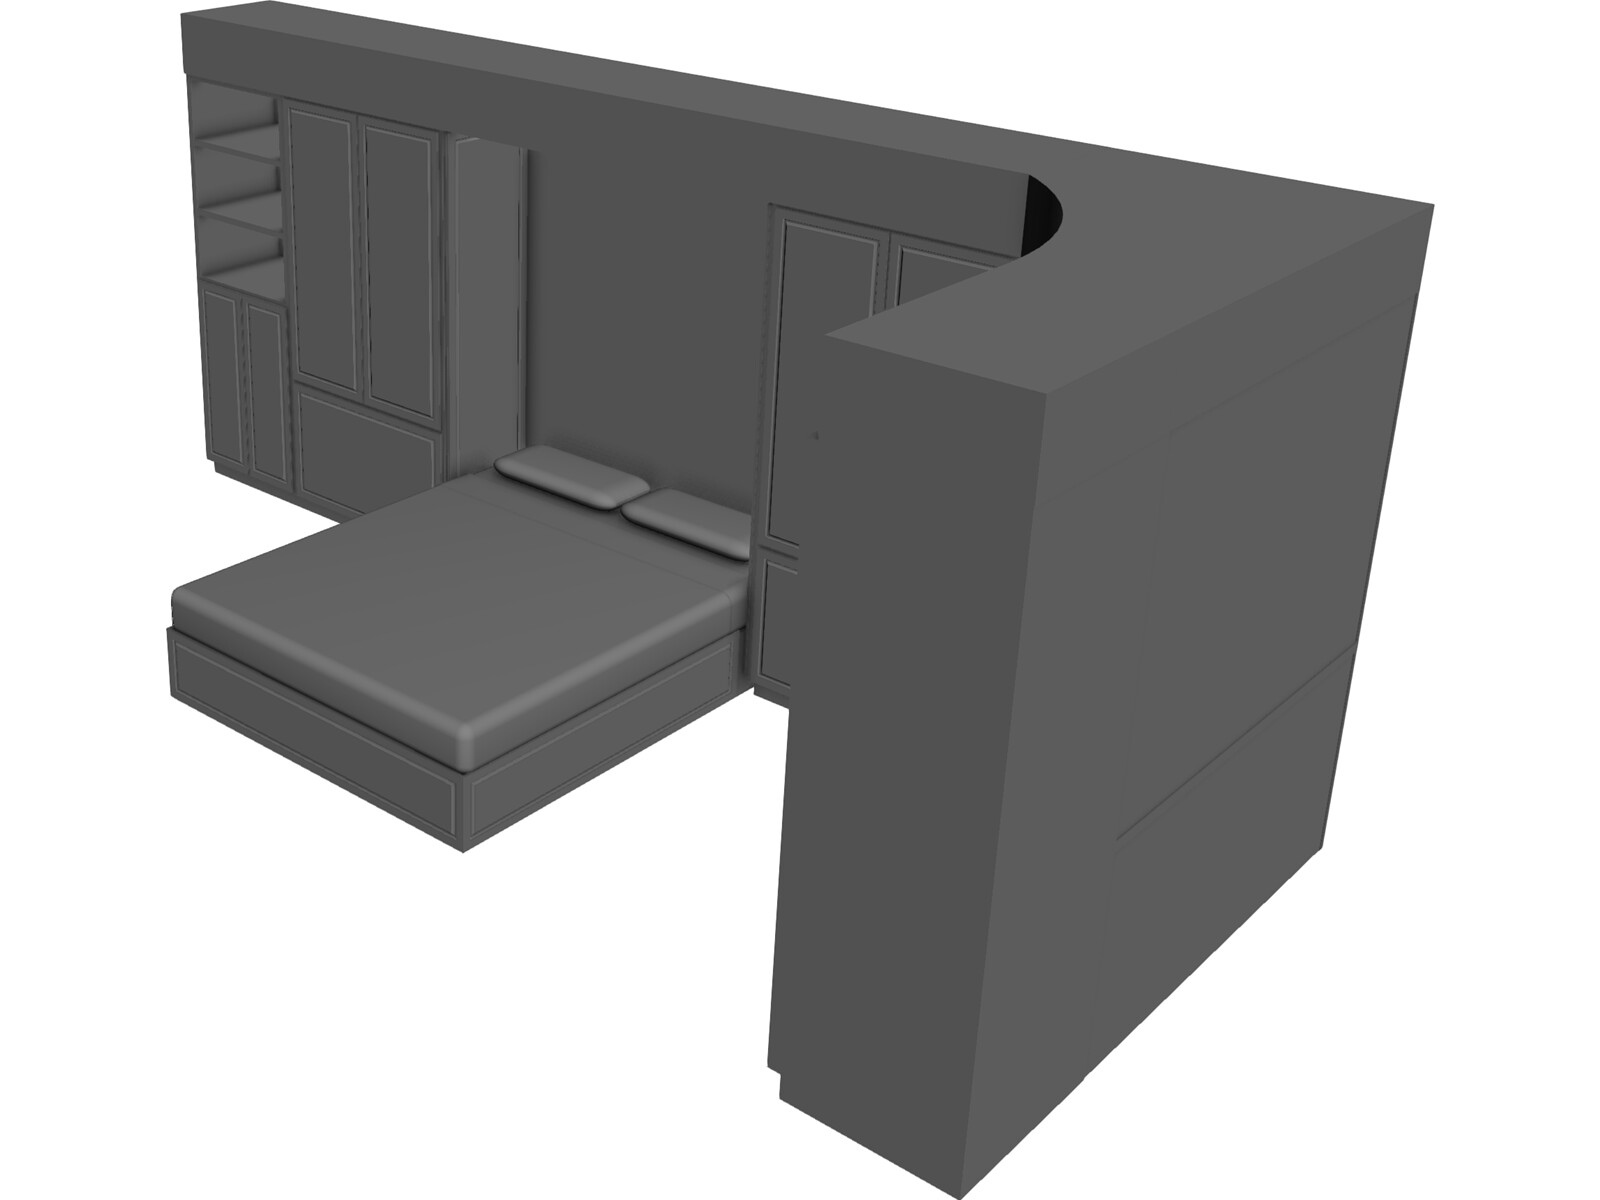 Wall Bed System